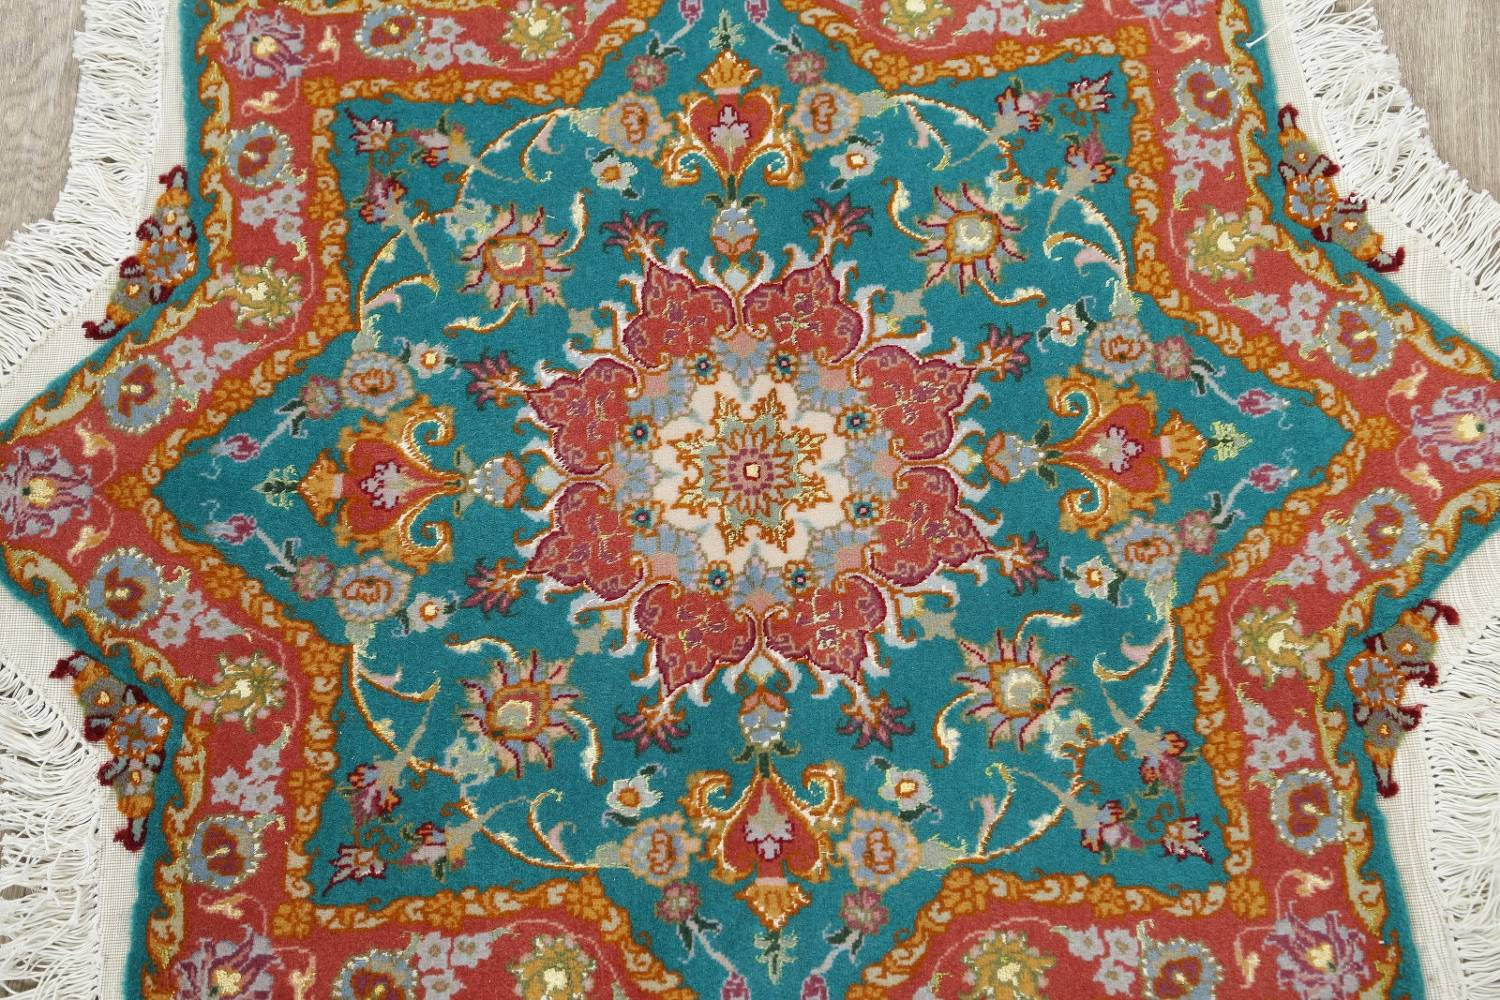 Floral Teal Tabriz Persian Hand-Knotted 3x3 Wool Silk Star Rug image 3